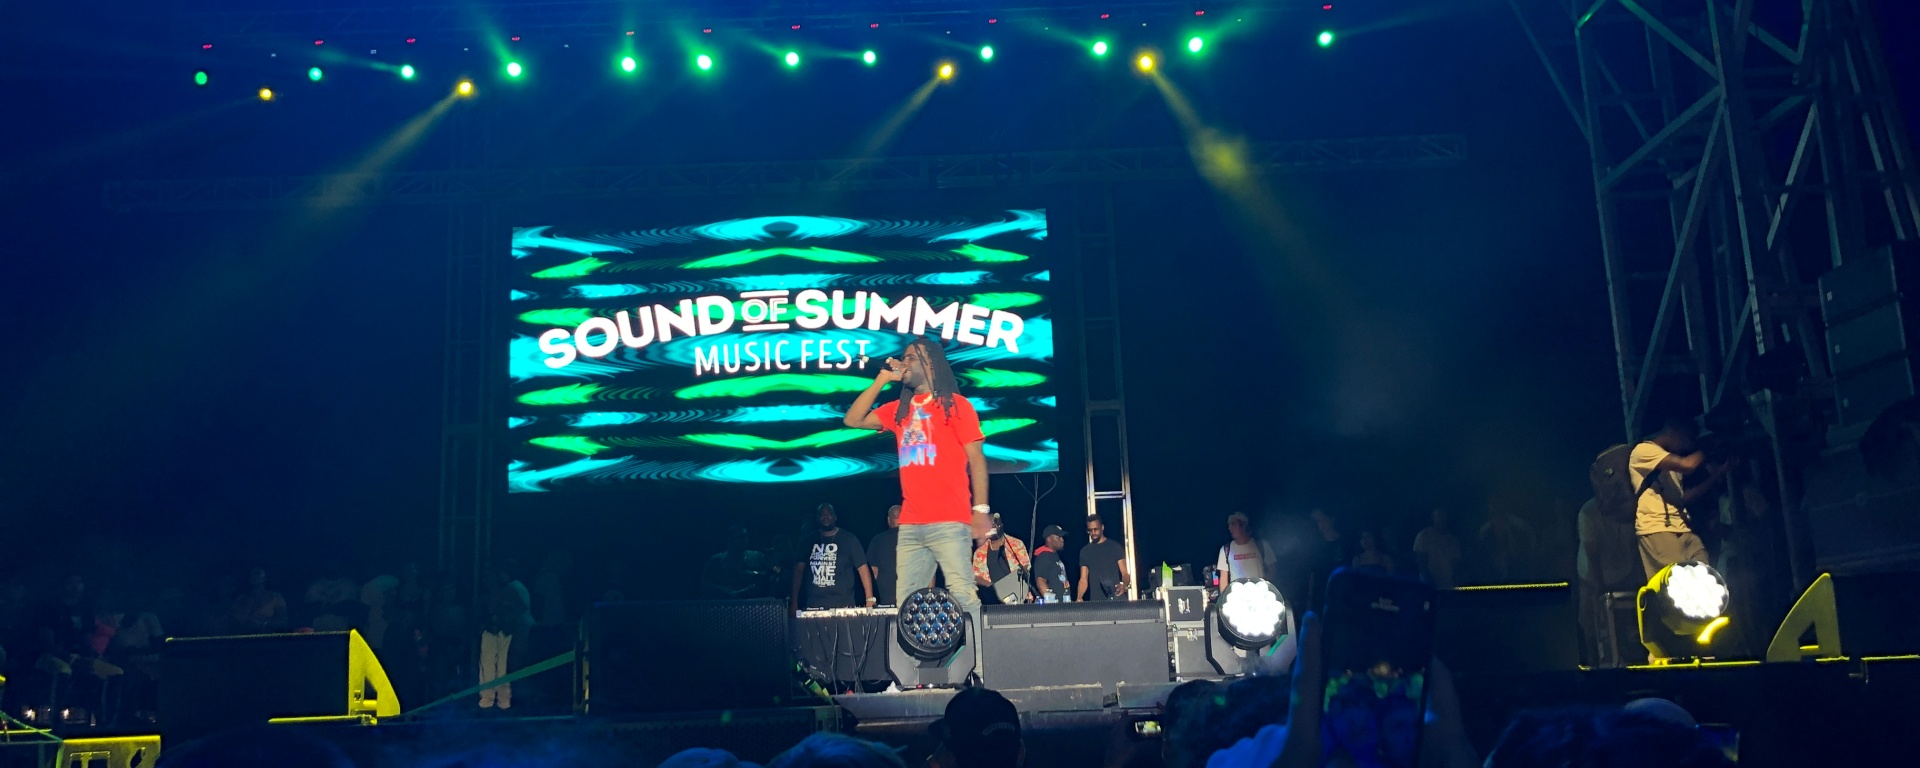 Chief Keef performing on Sound of Summer Fest in San Antonio.